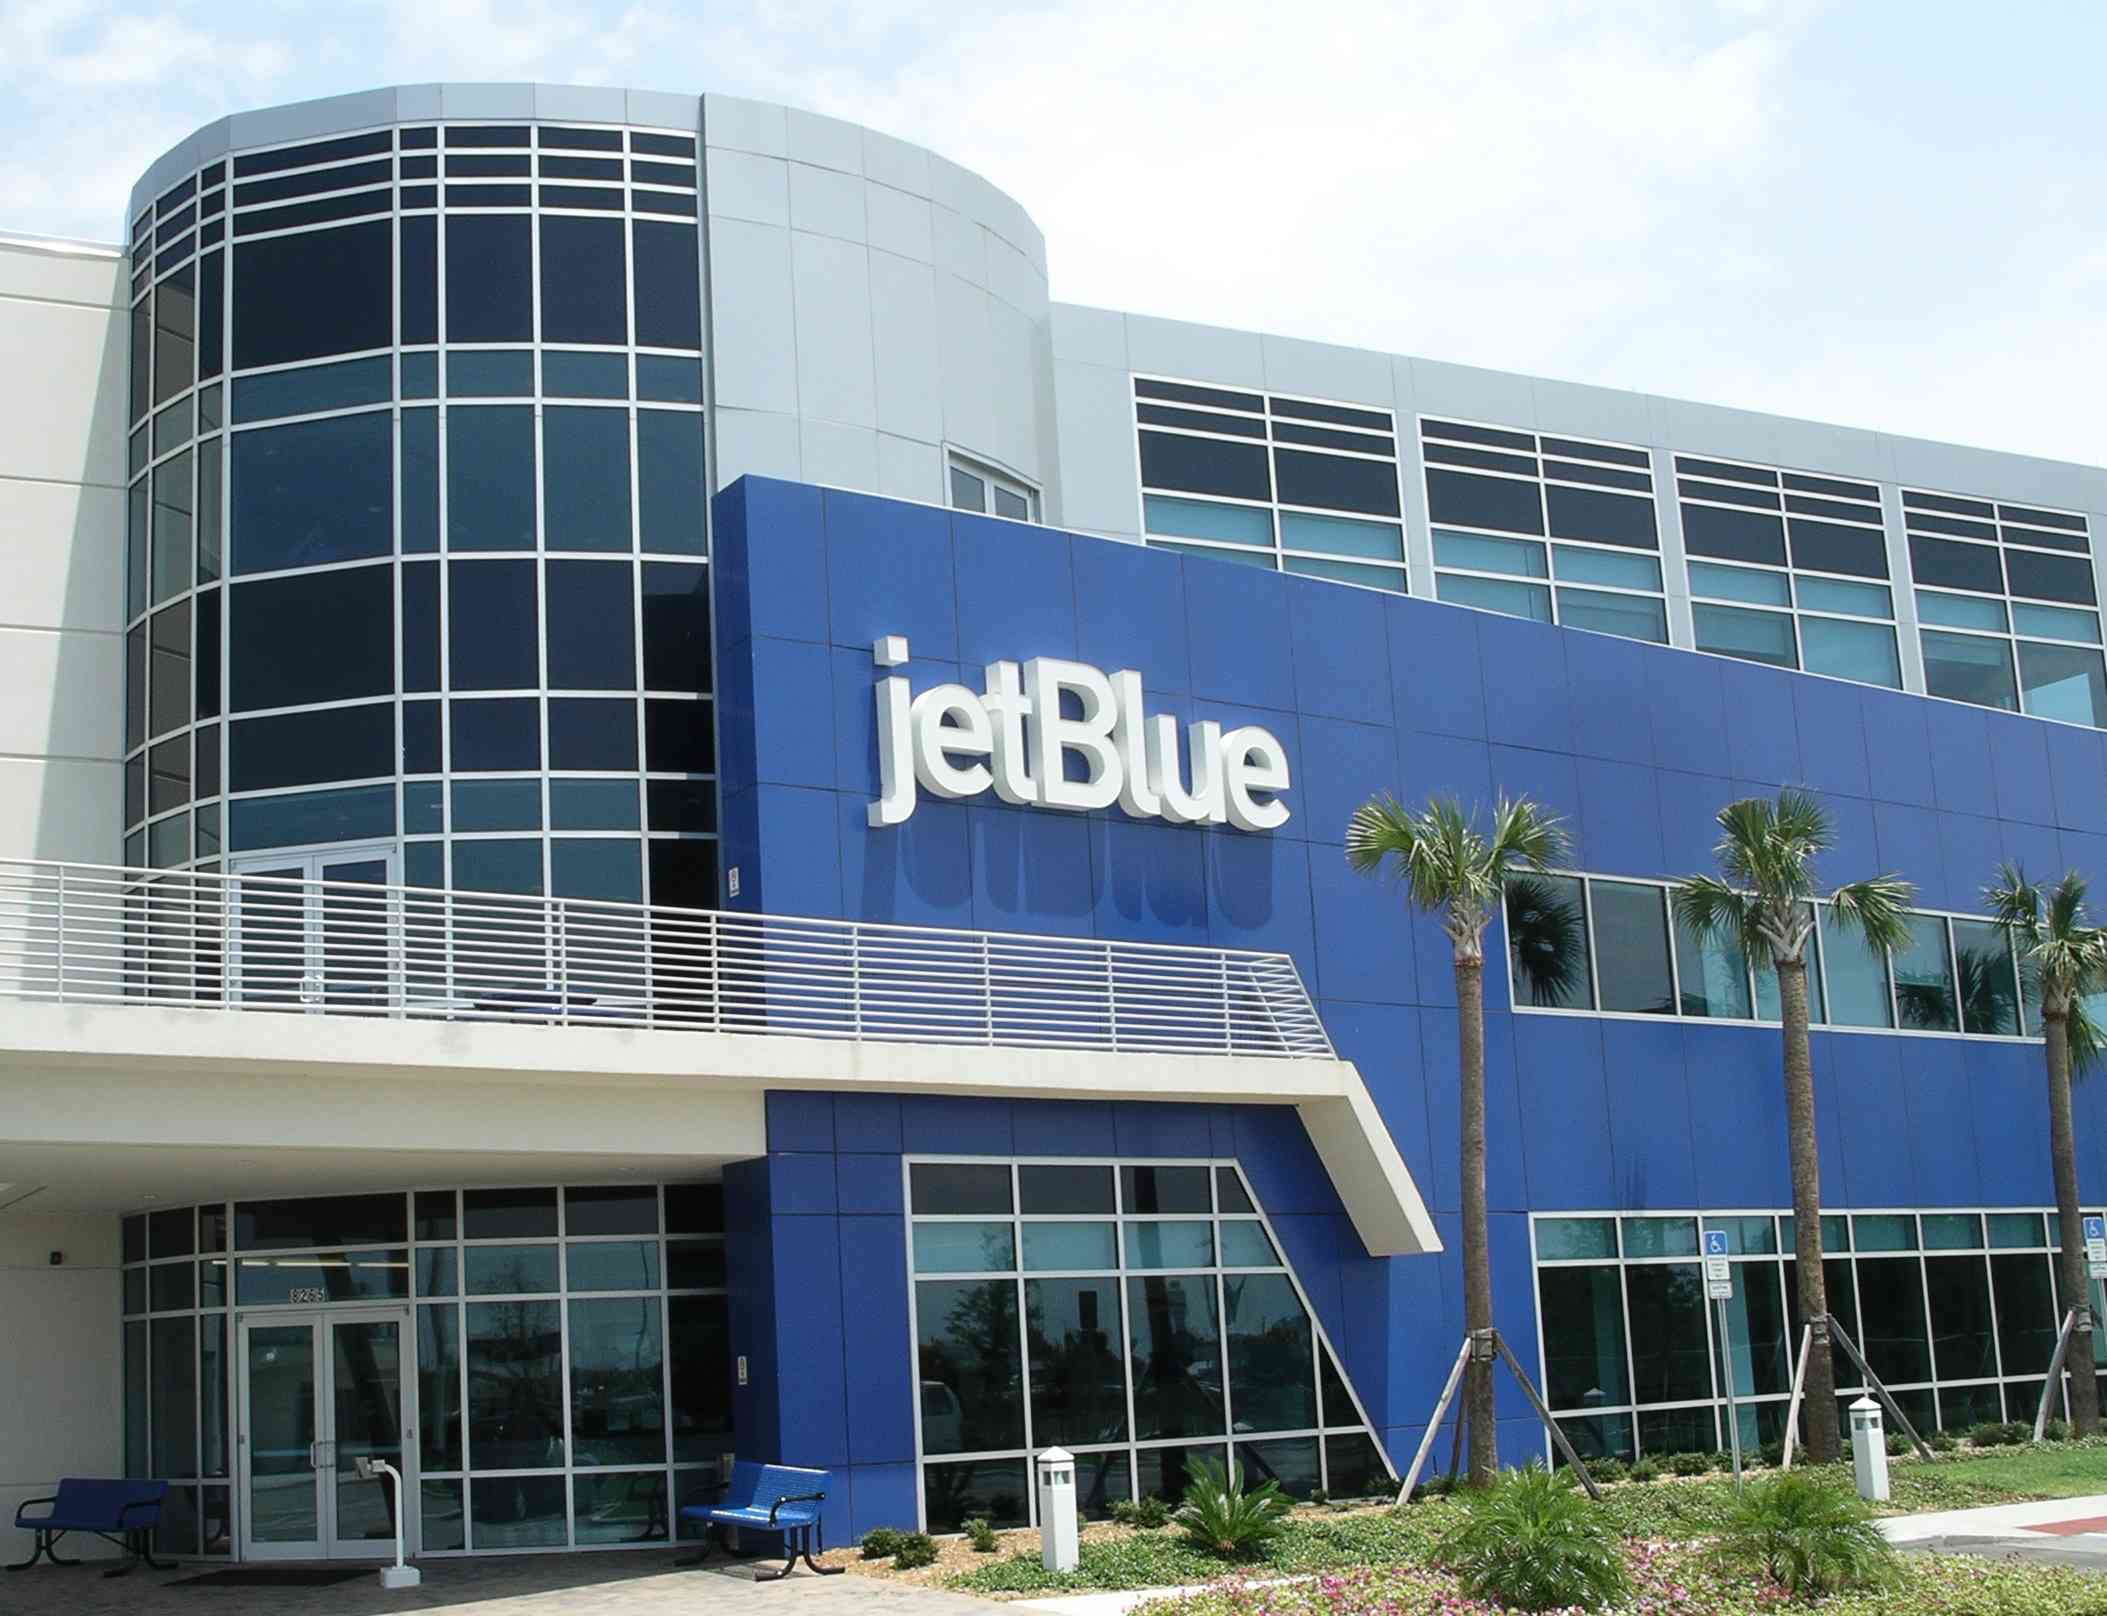 JetBlue's training facilities in Orlando, Florida. Photo by J. Jeff Kober.